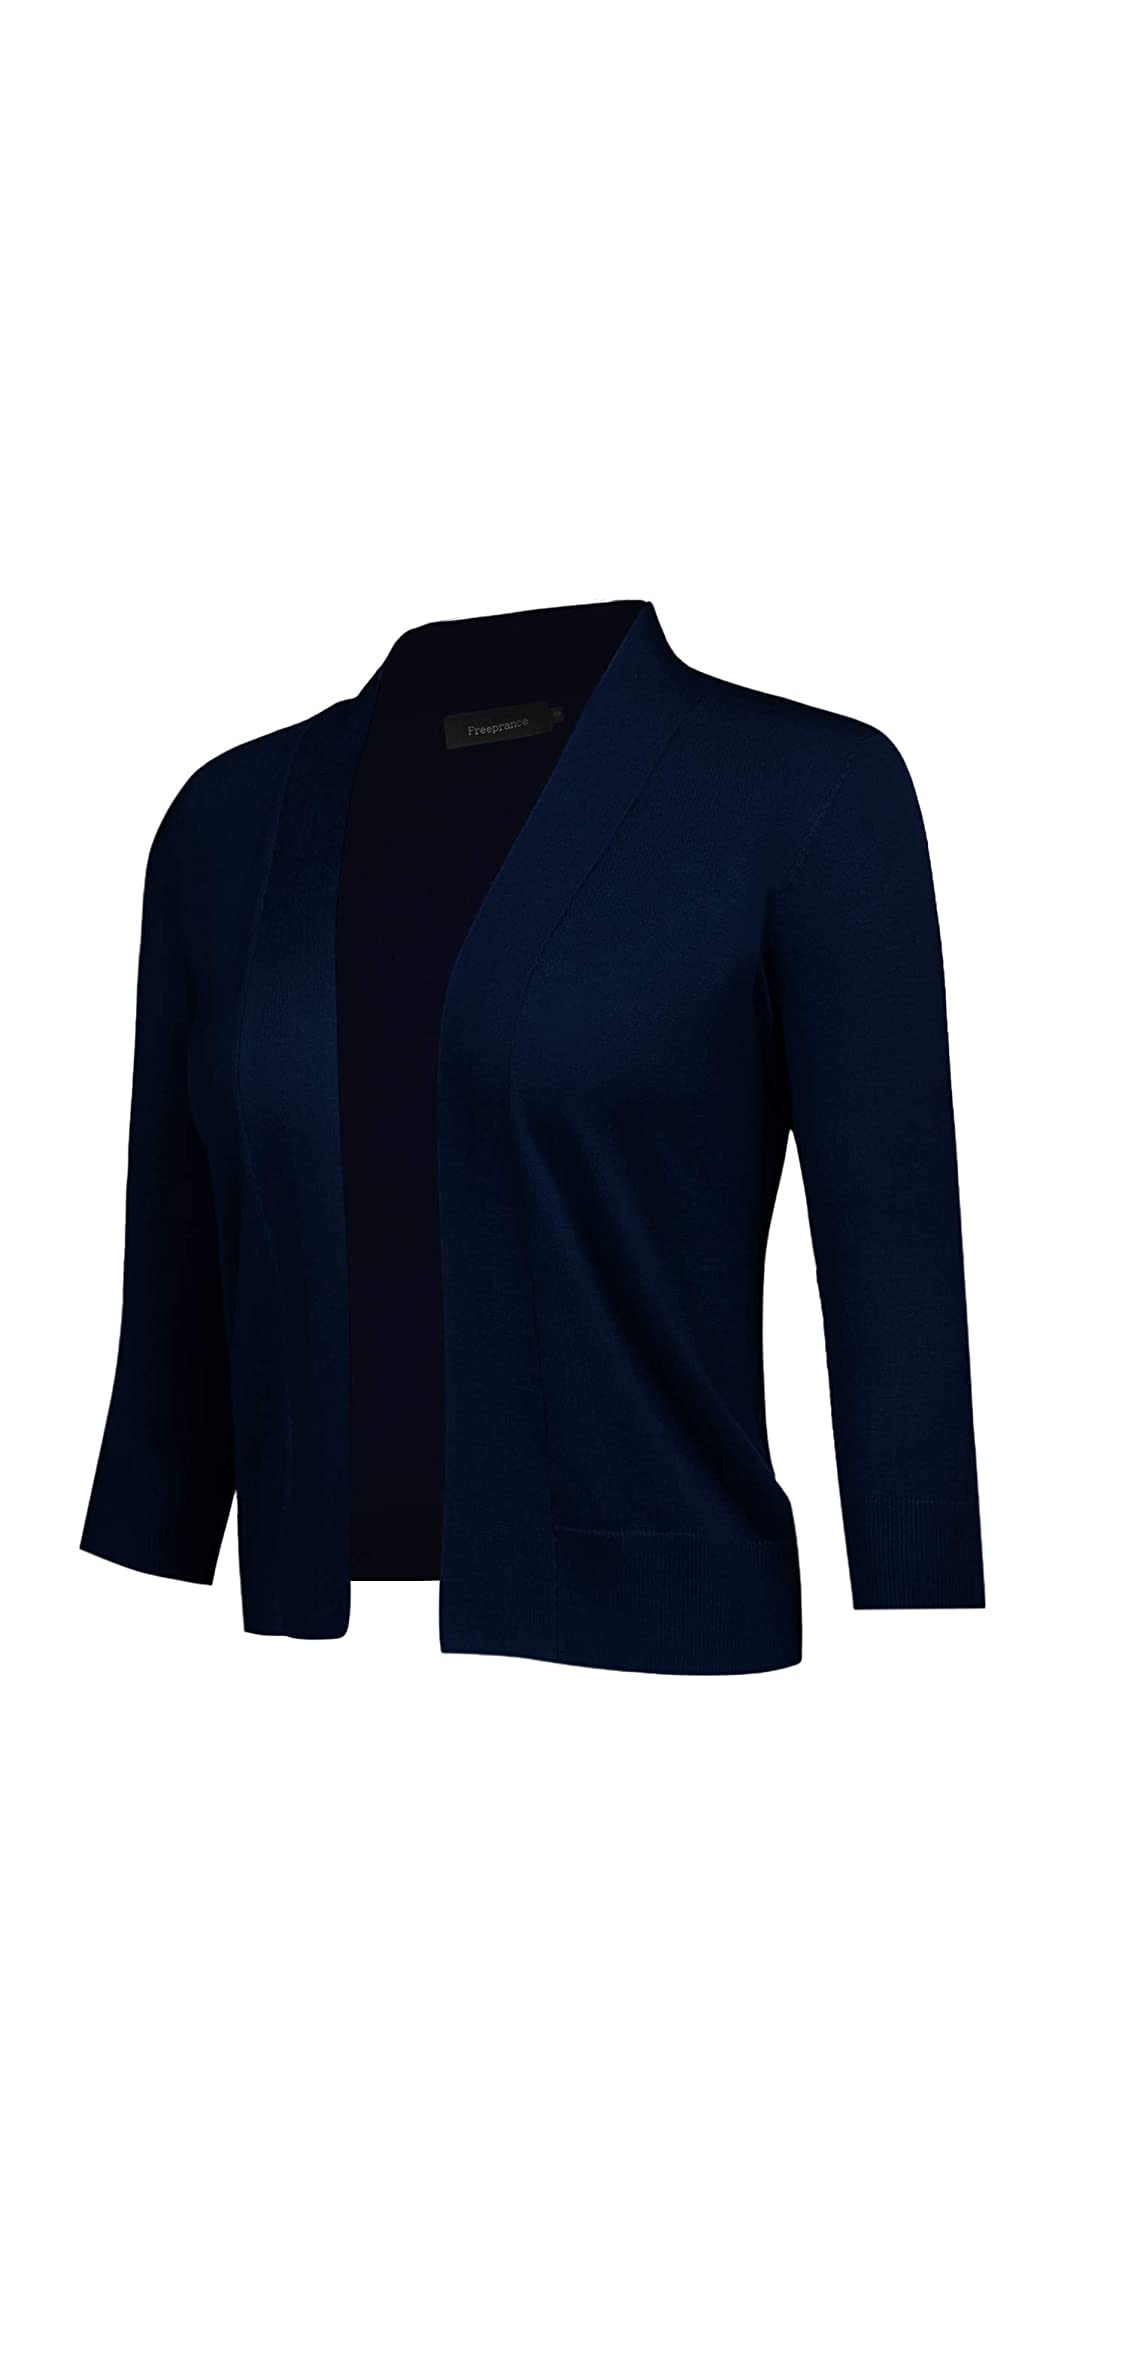 Cardigan Sweaters For Women / Sleeve Open Front